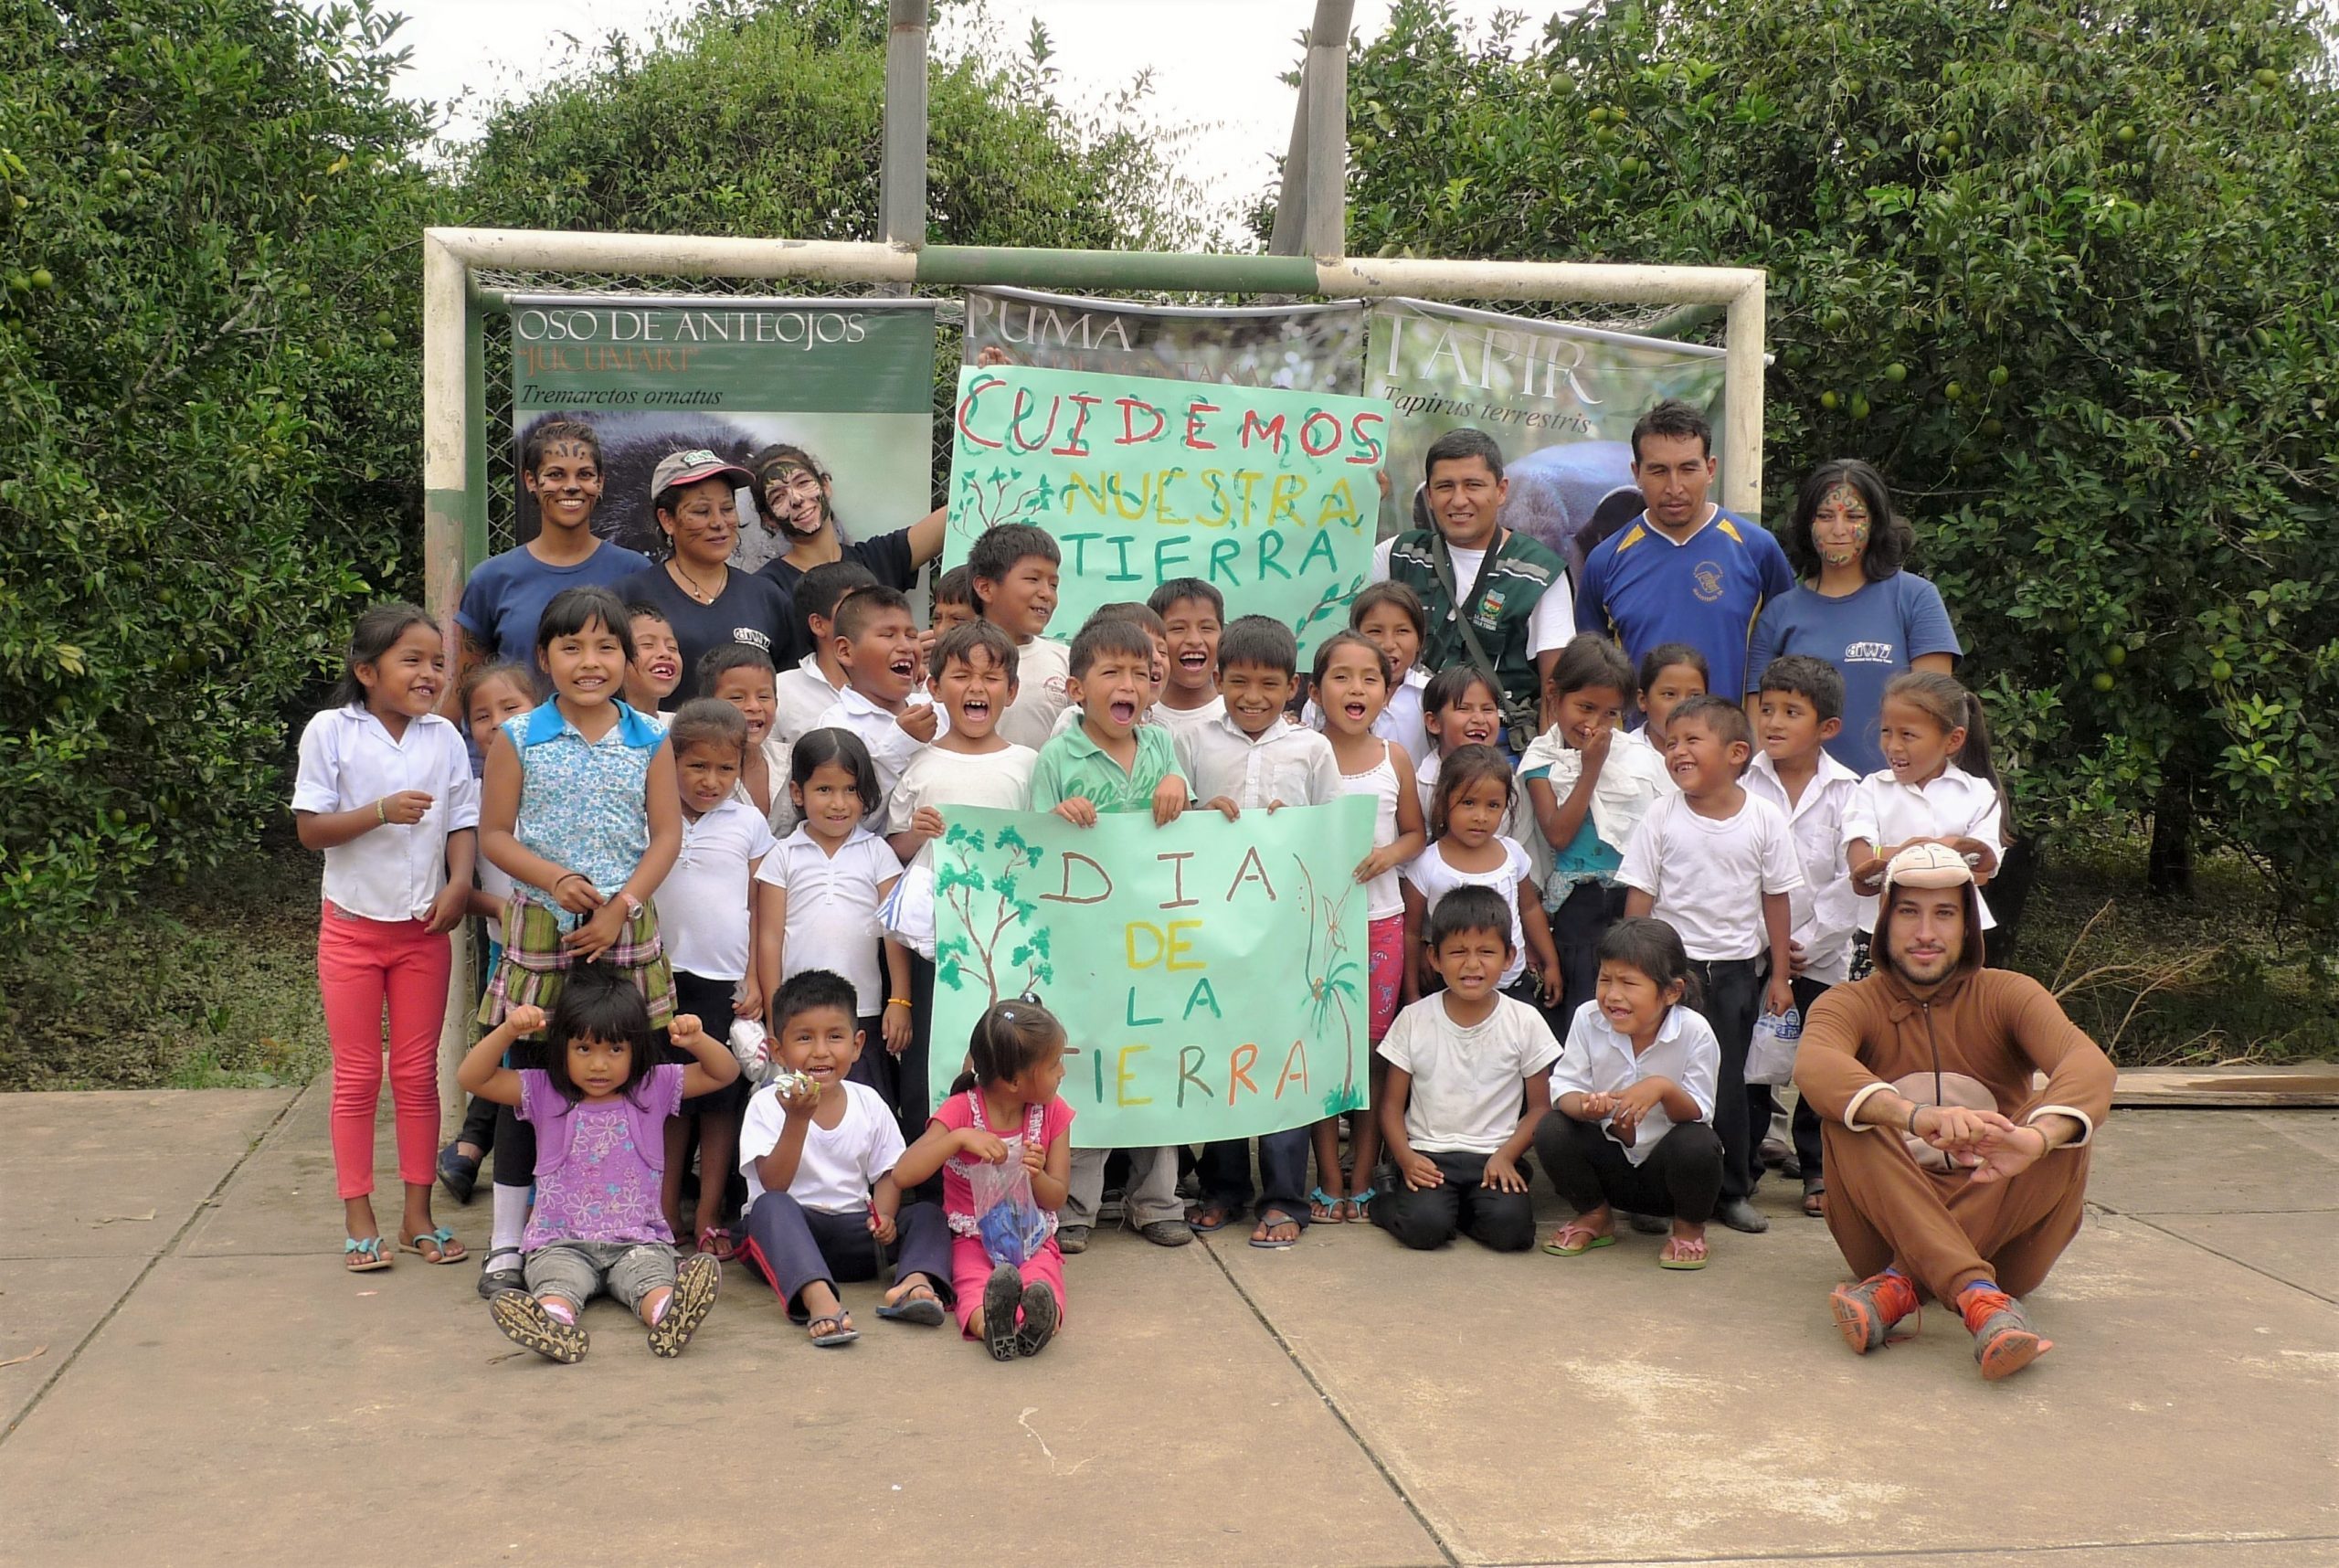 CIWY celebrates Earth Day with an educational program at a local school